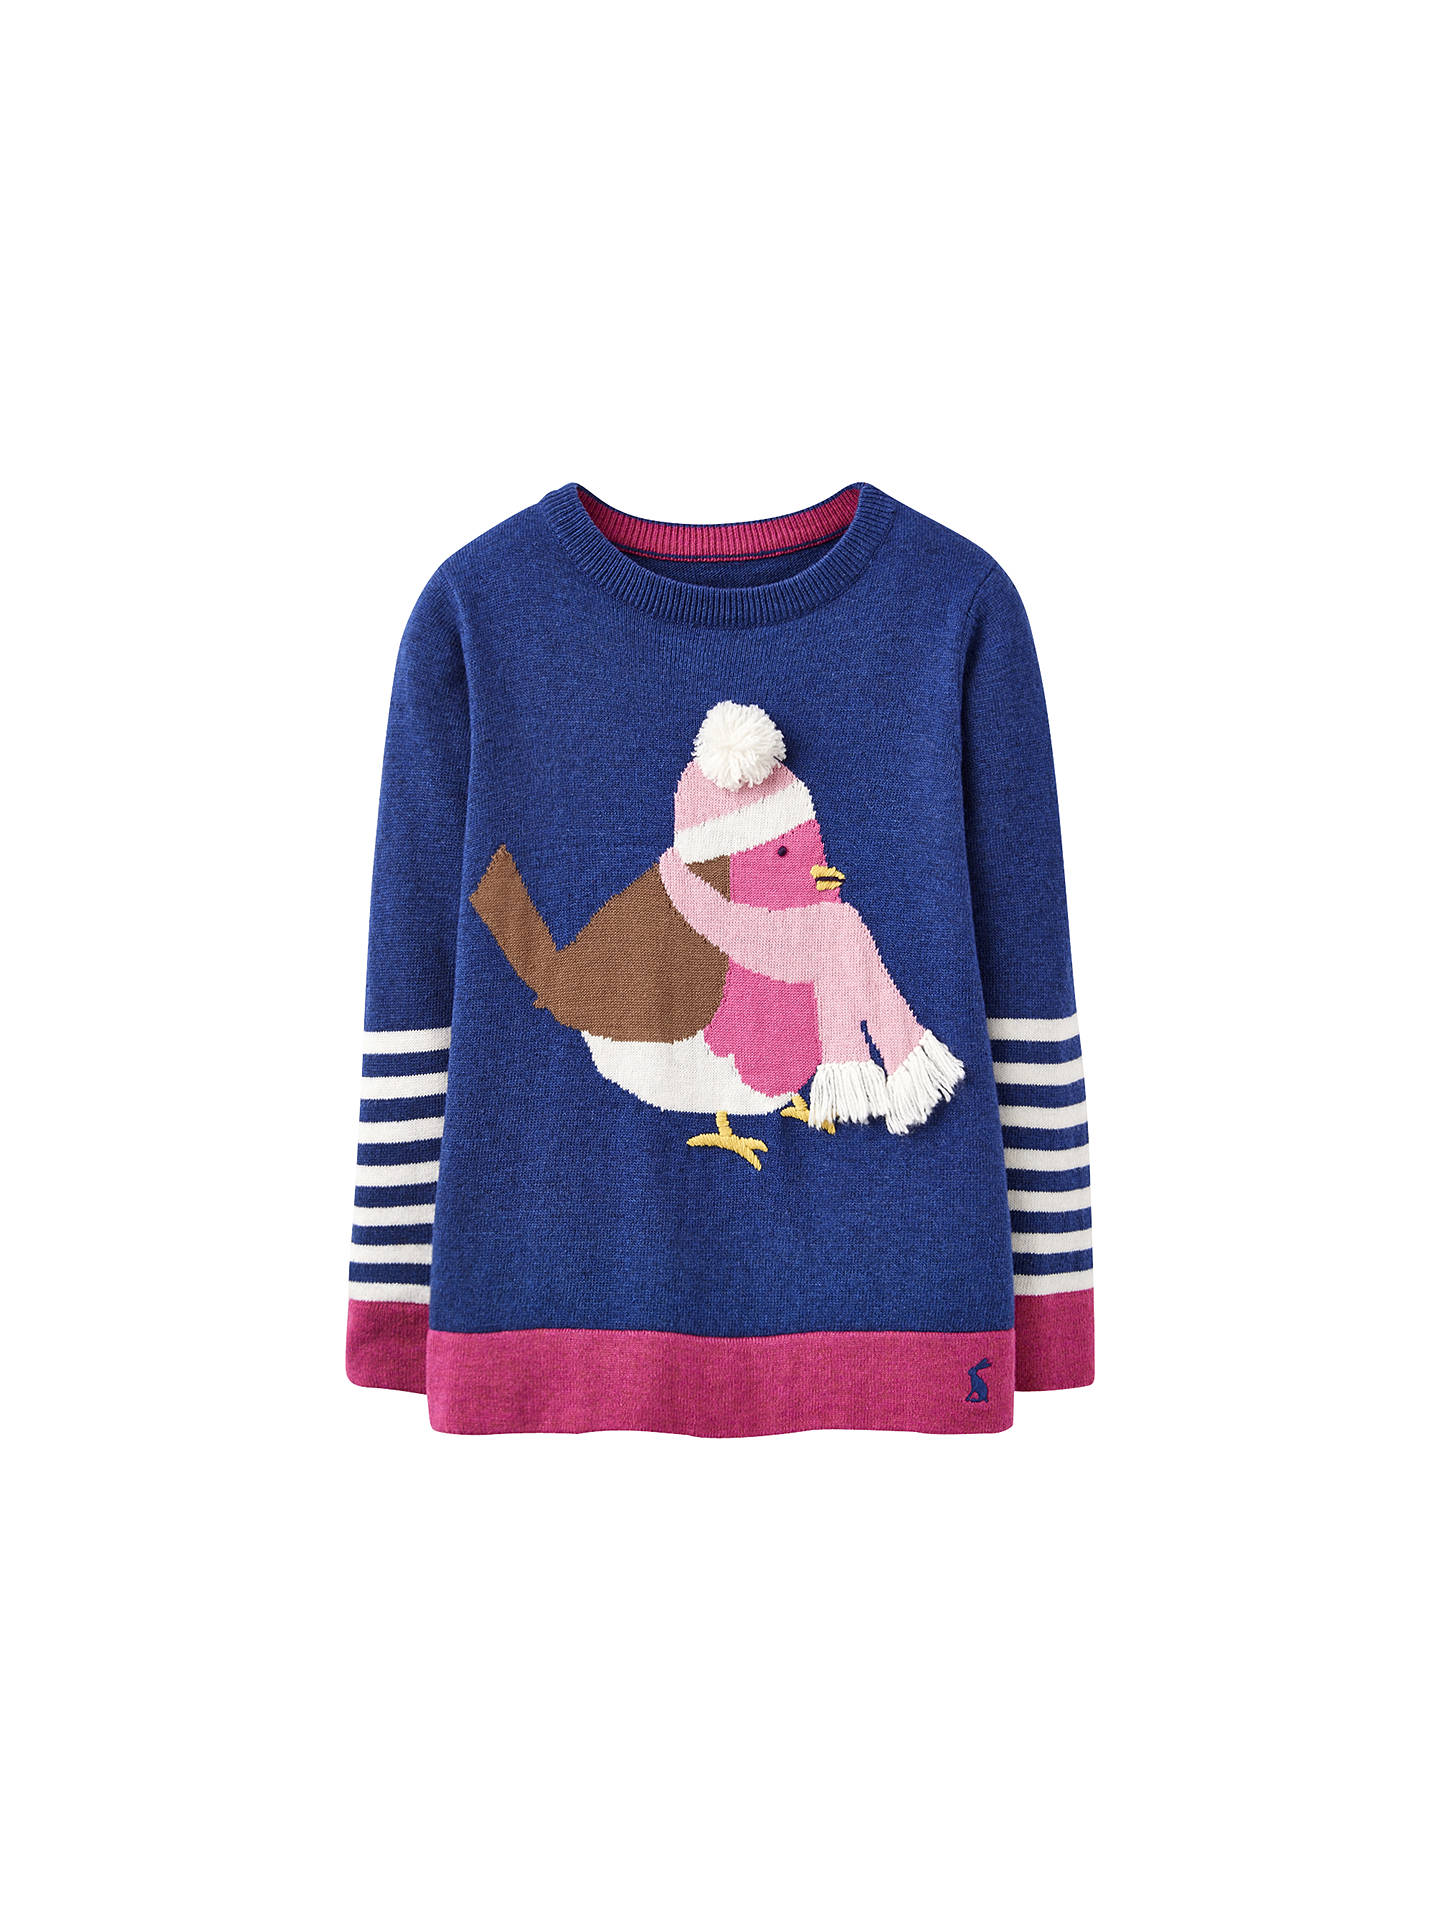 092cec7b3 so cheap 9e20f 2c8ae joules girls baby knitted jumper baby robyn ...